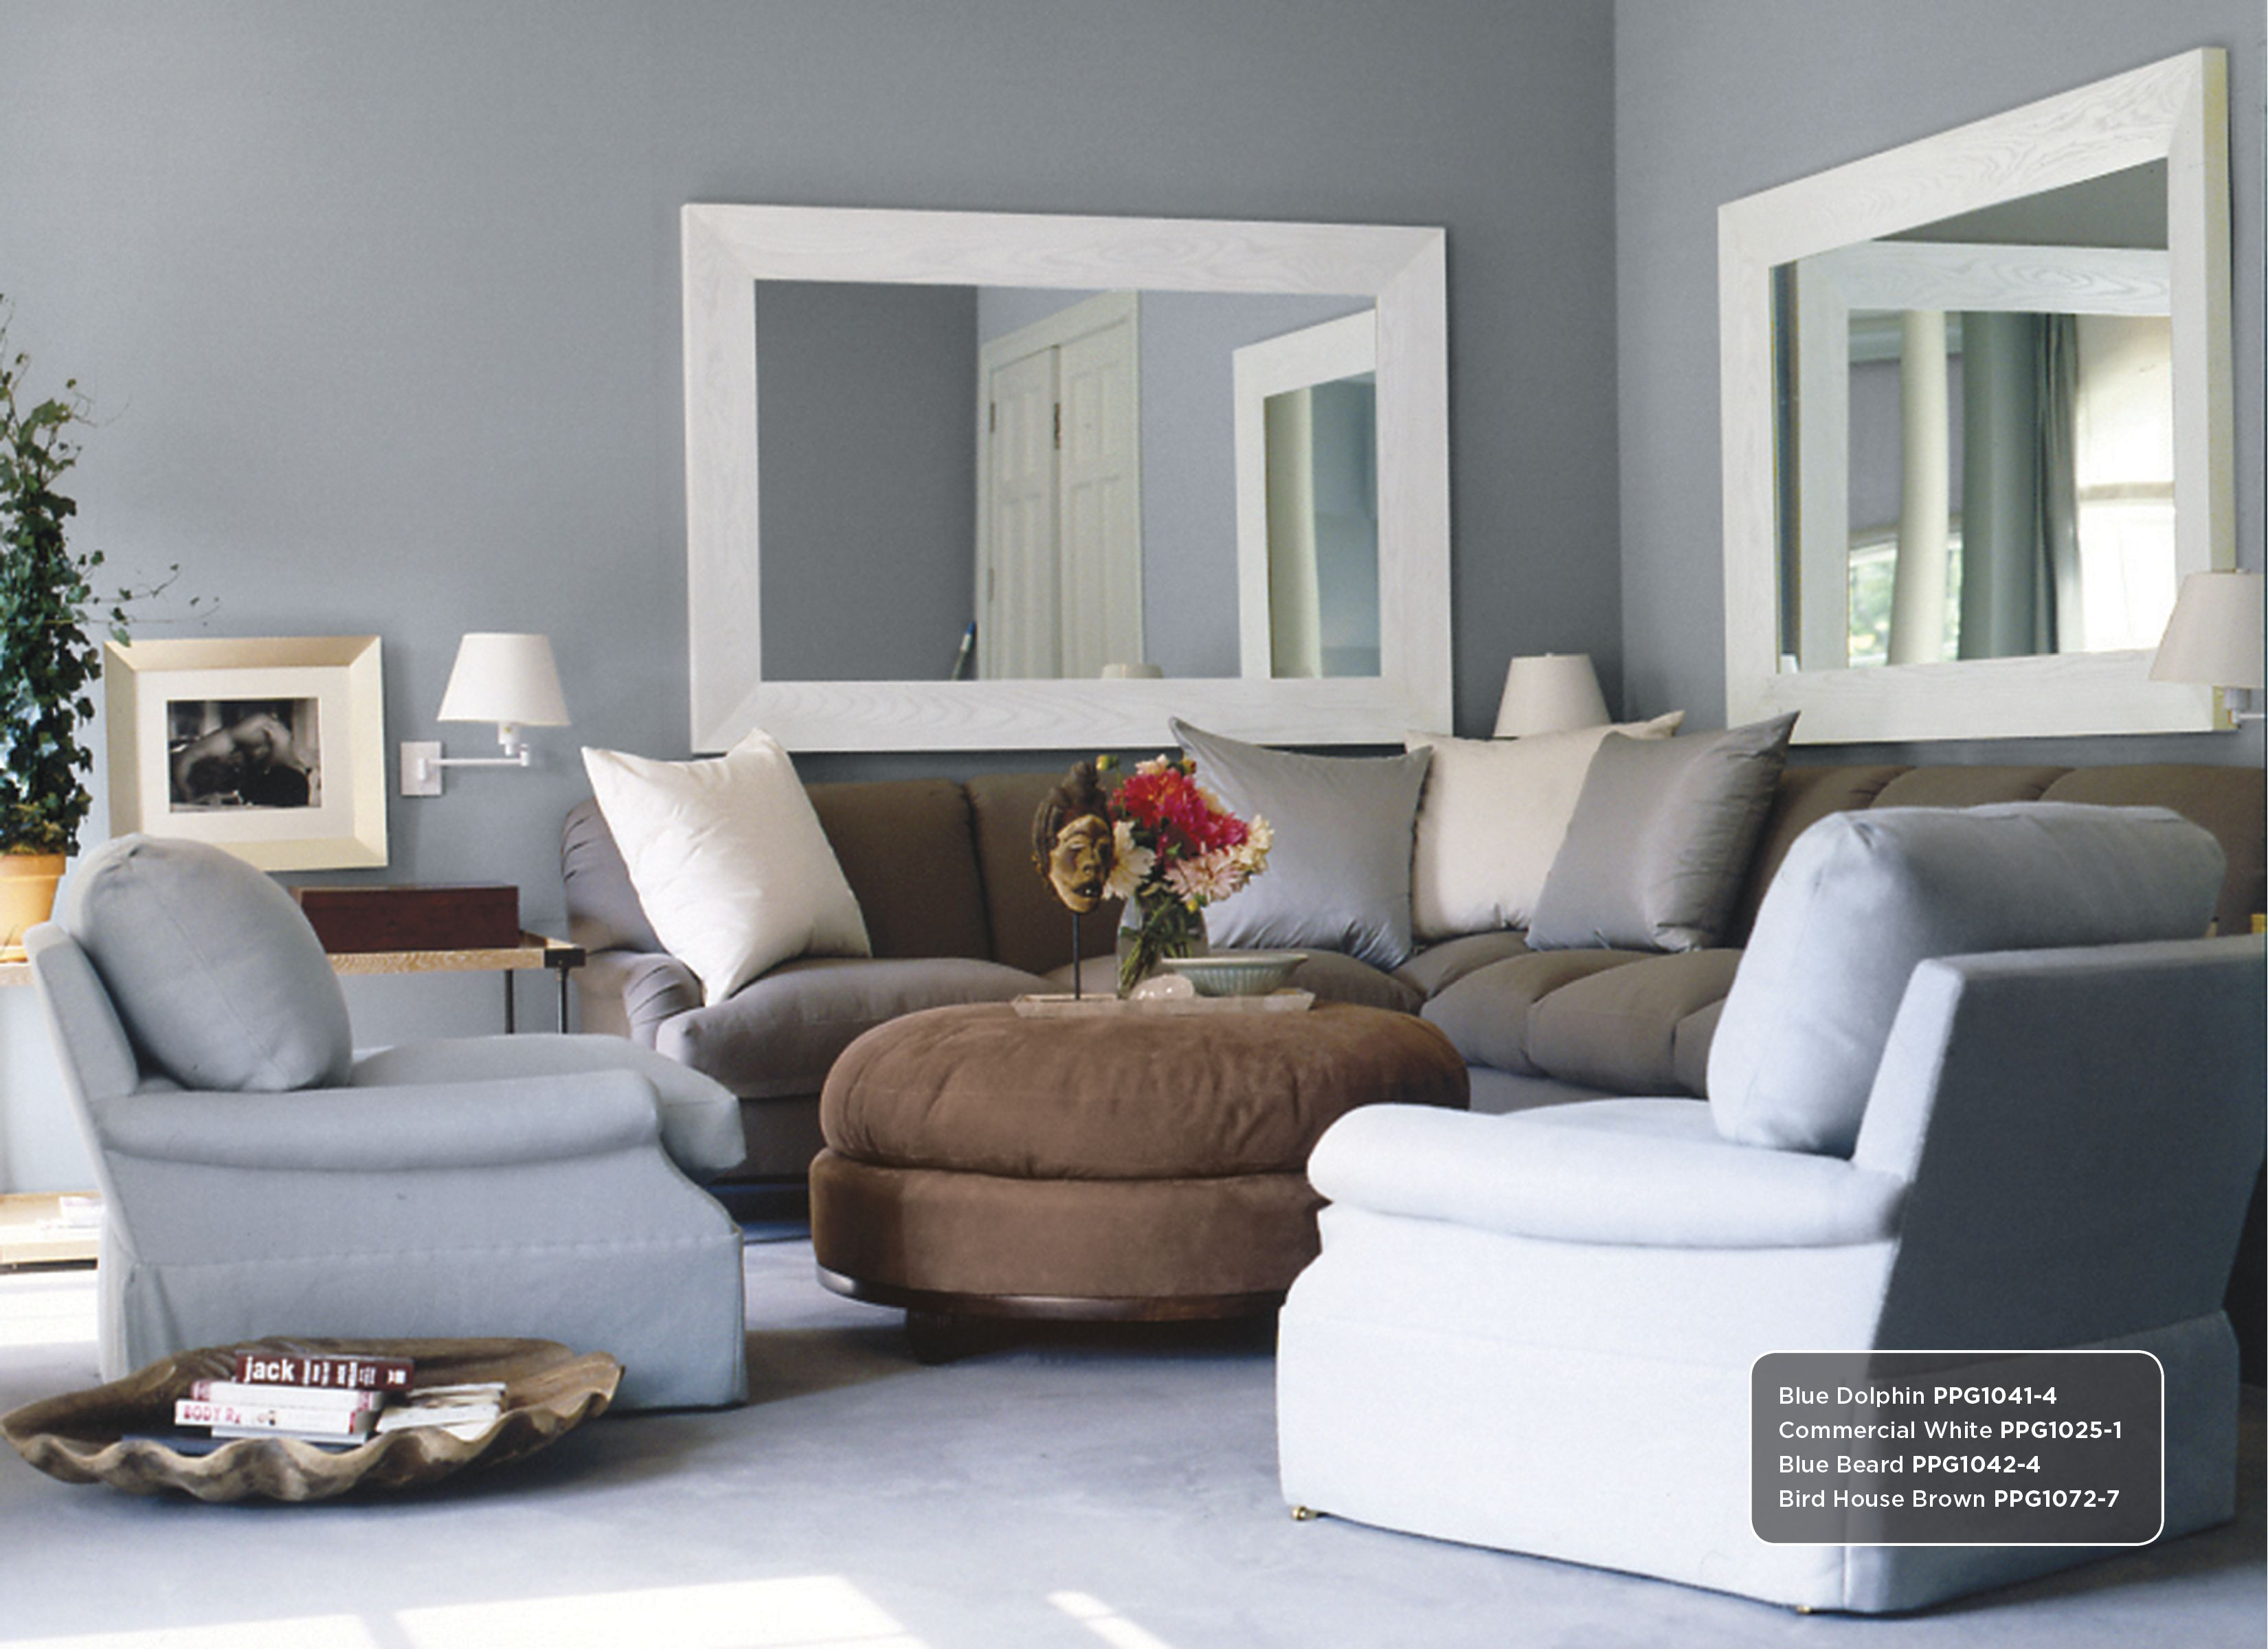 blue gray wall color inspiration includes: commercial white